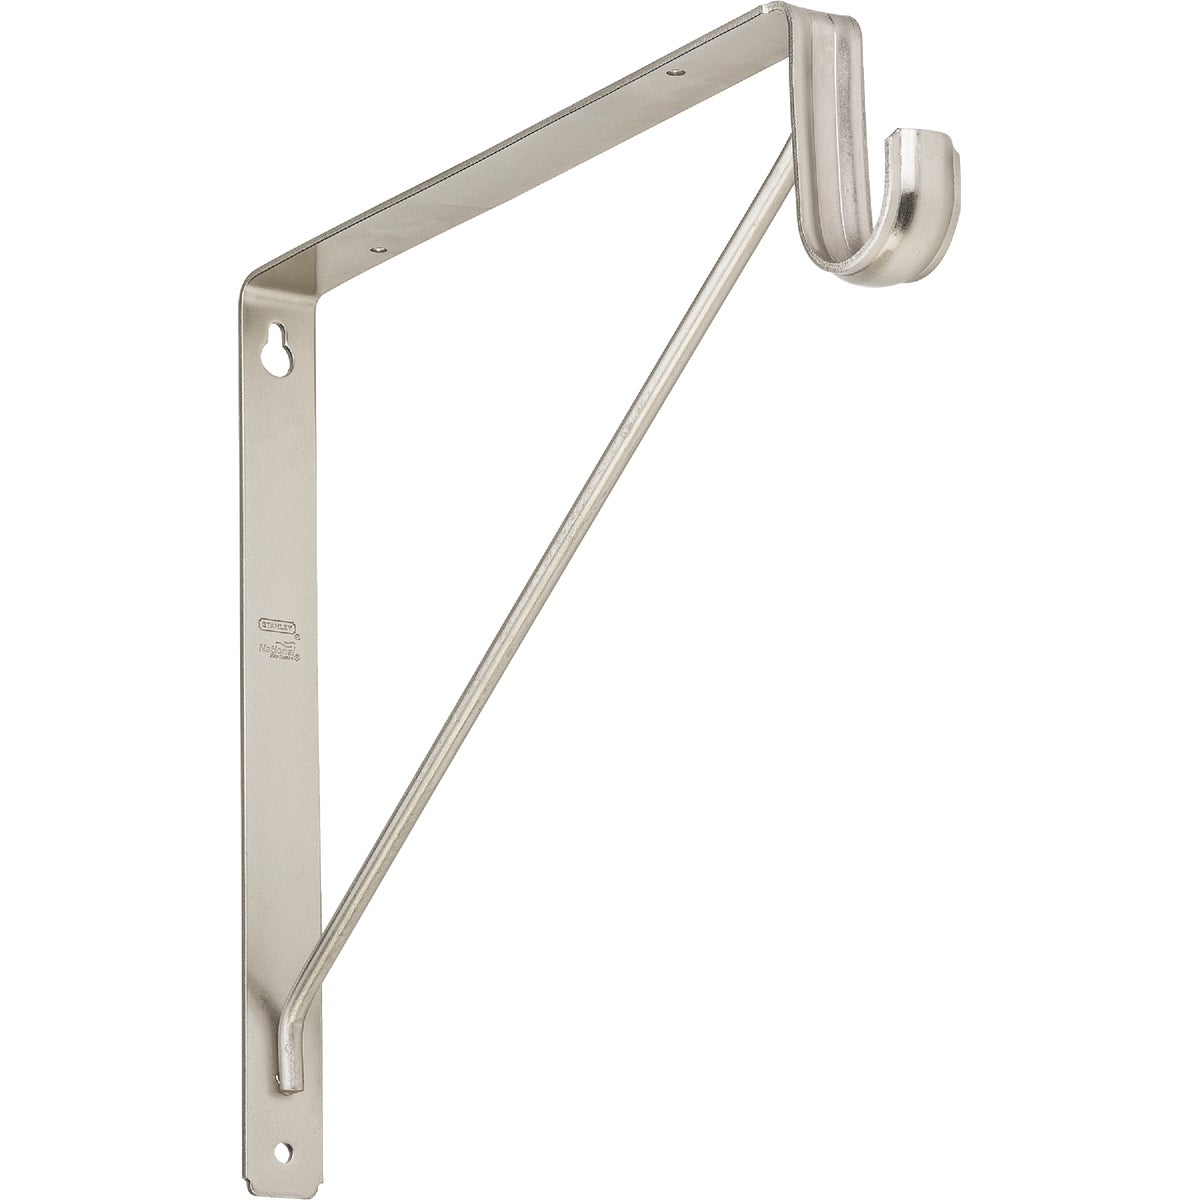 SN SHELF & ROD BRACKET - N820209 by National Mfg Co